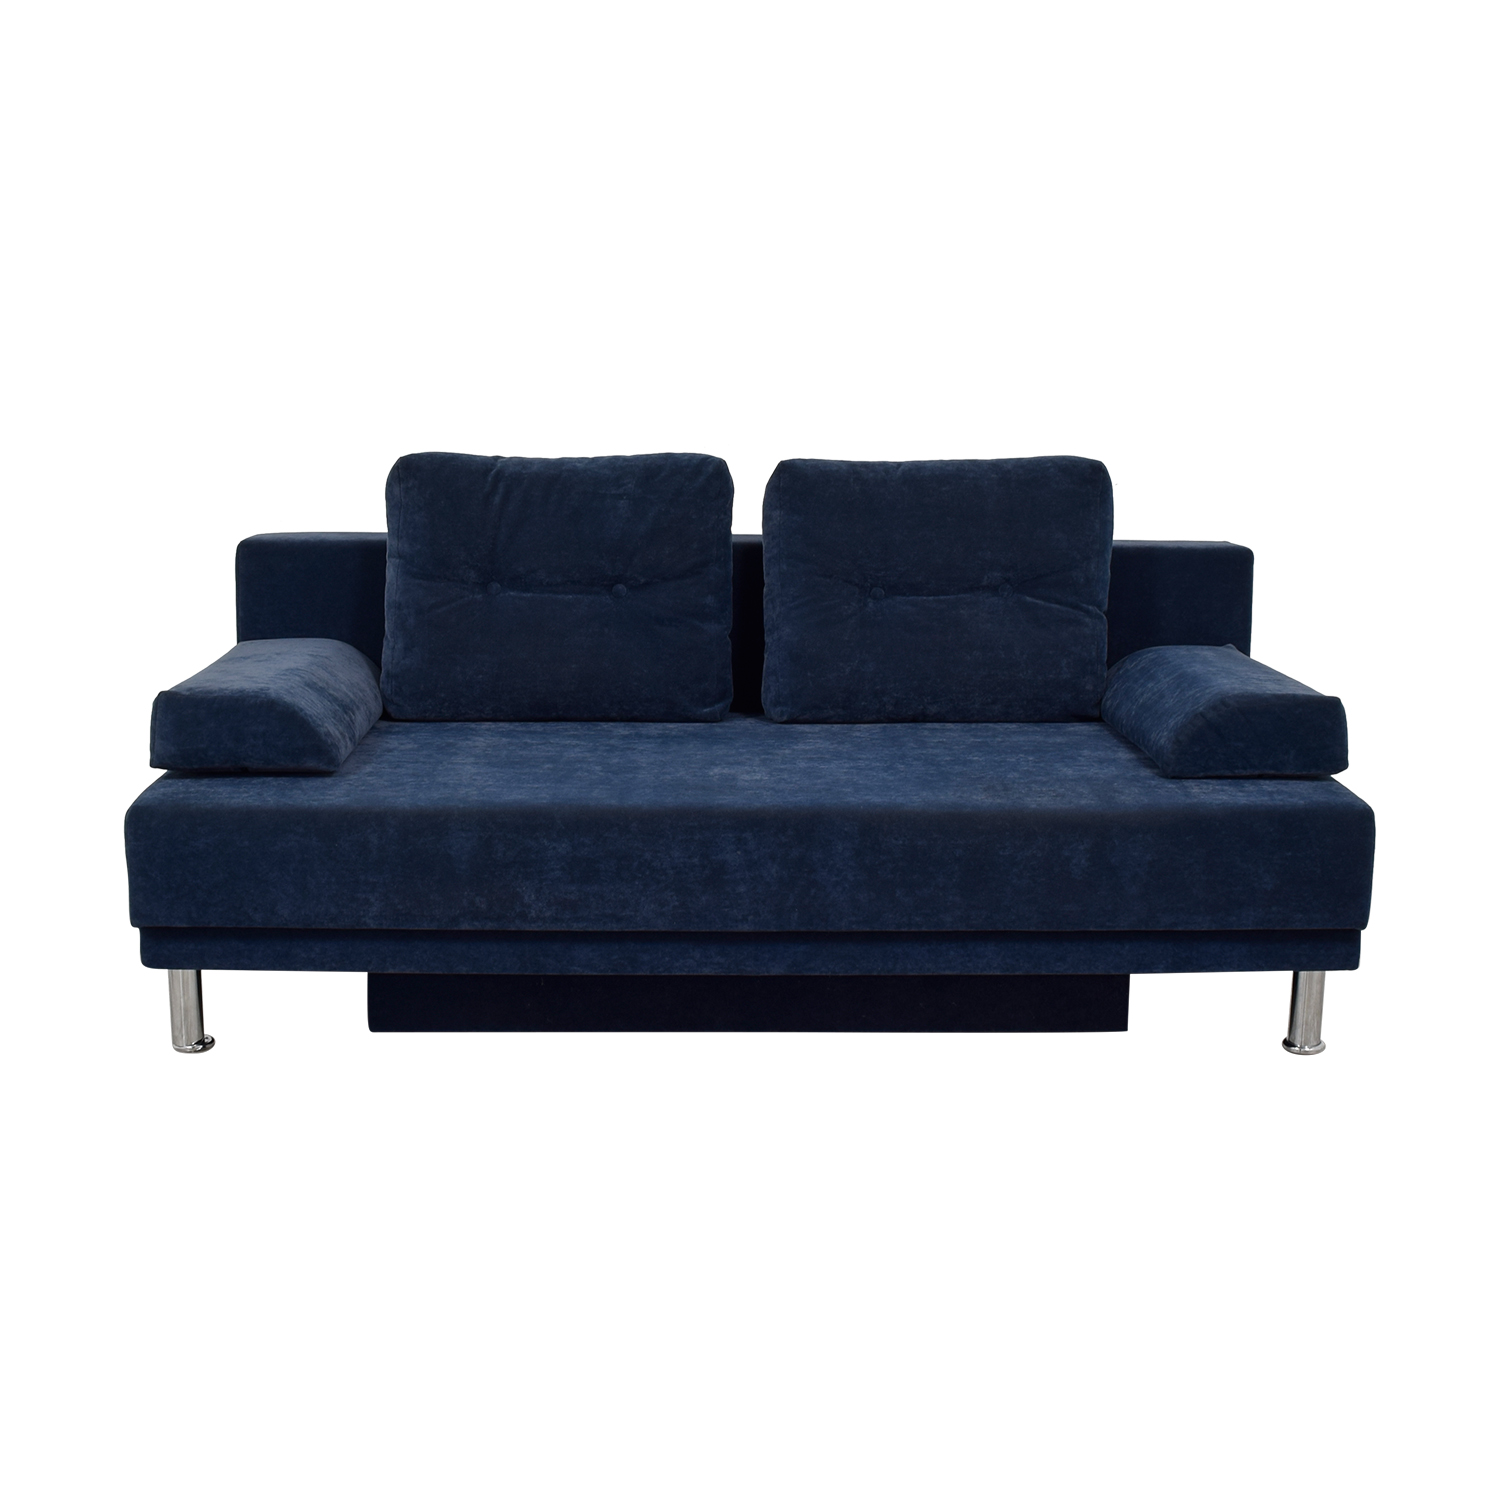 Allegro Salotti Allegro Salotti Blue Velvet Covertible Sofa second hand